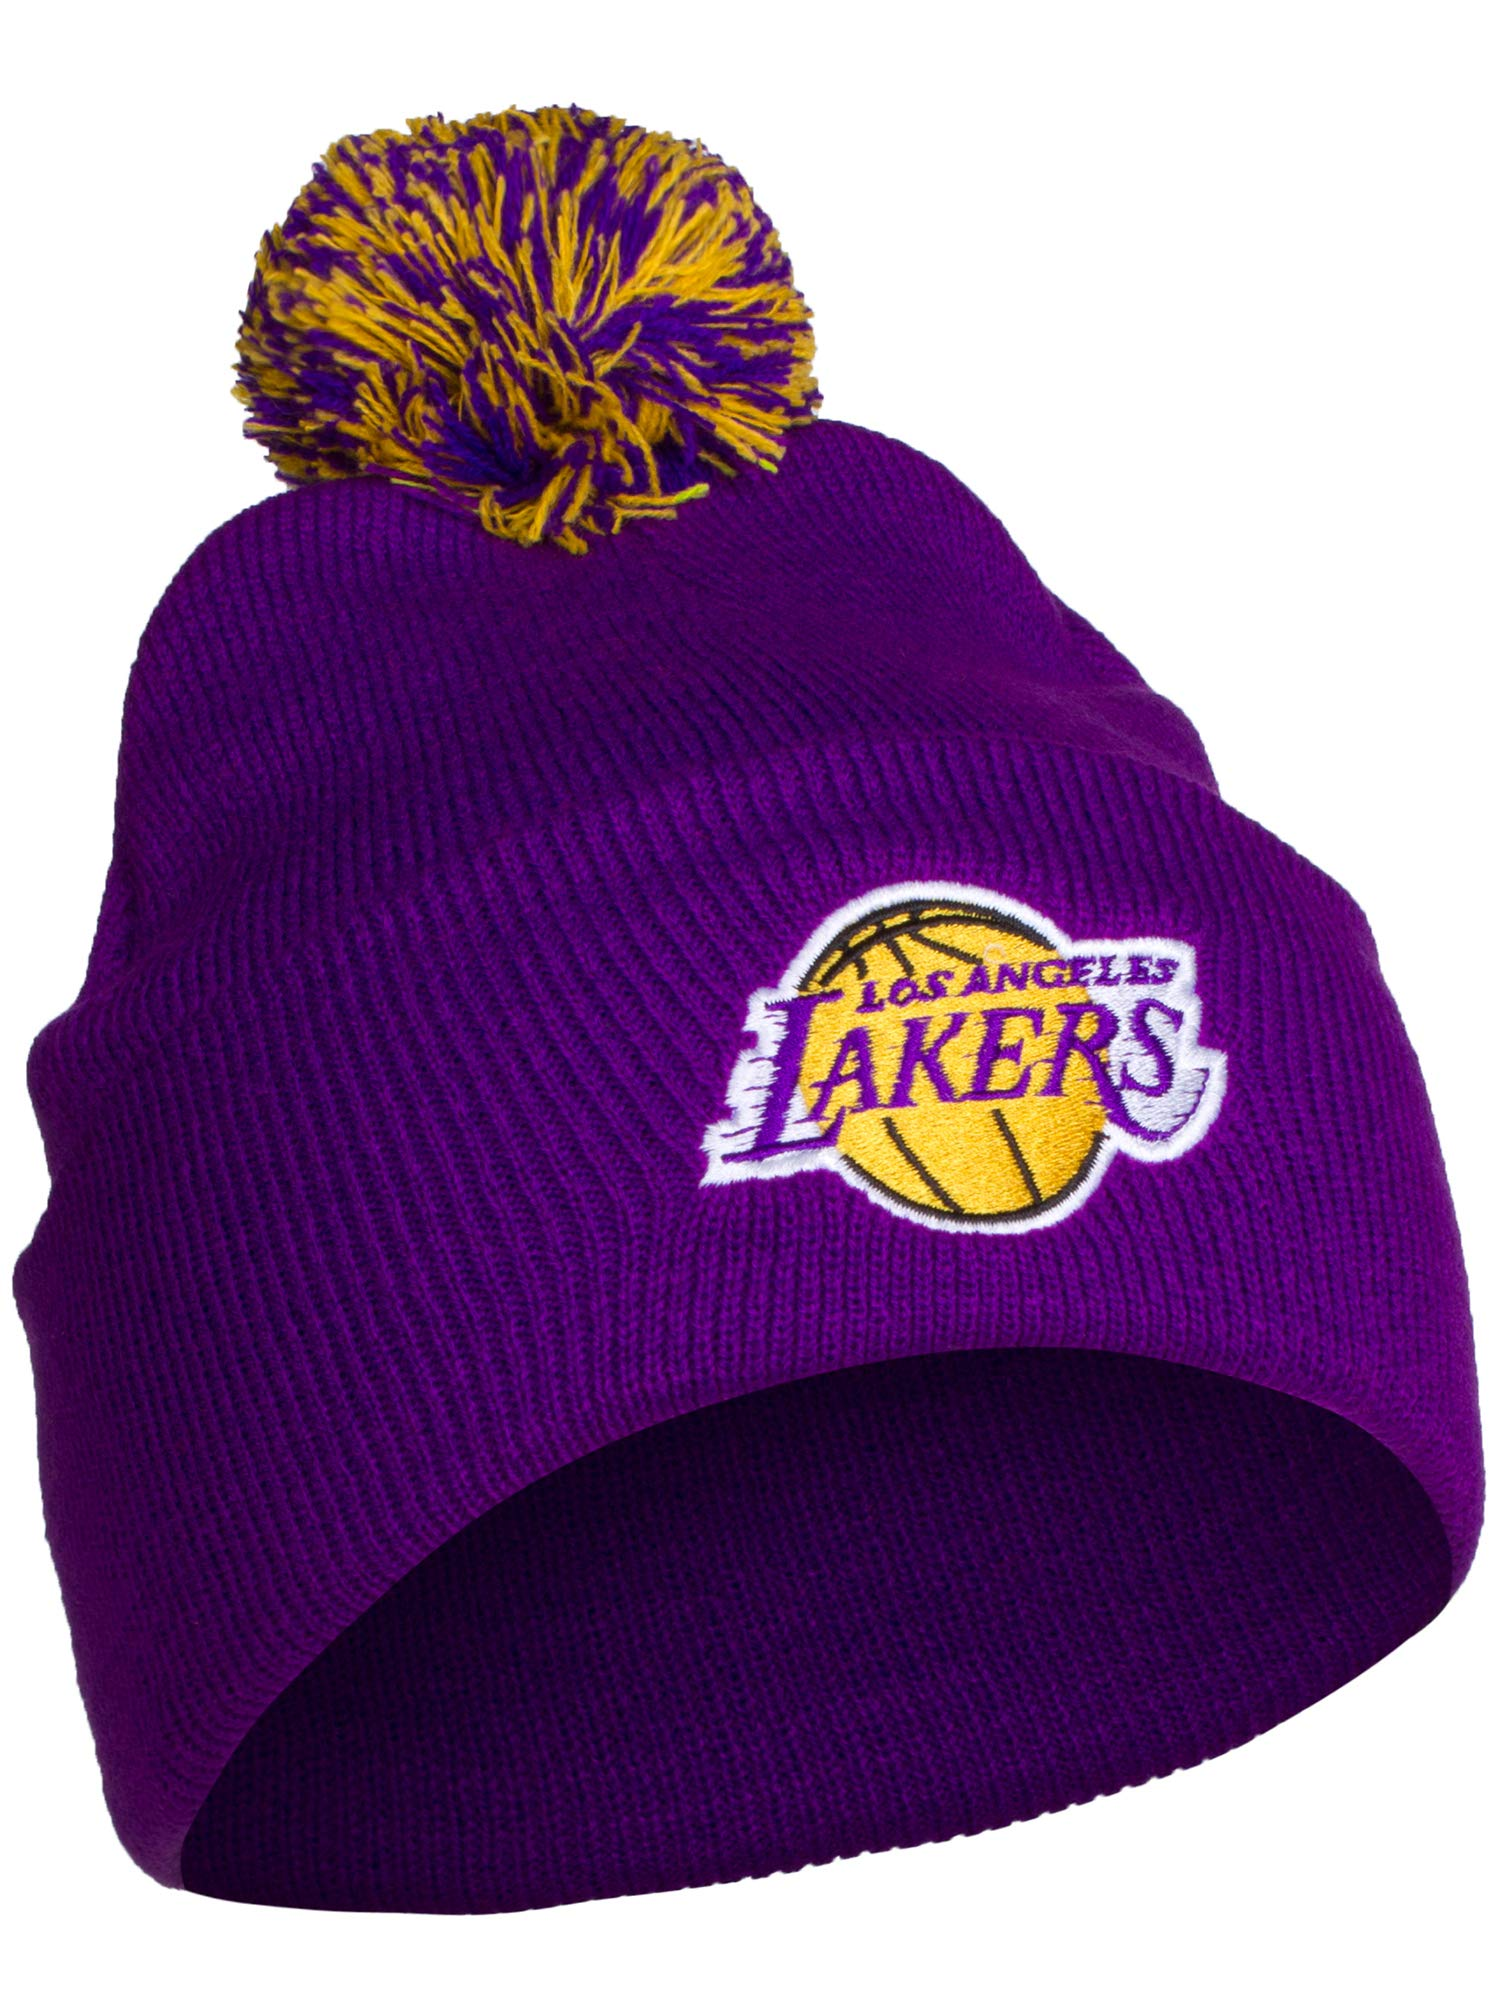 NBA Authentic Licensed Basketball Cuff Pom Pom Beanie Knit Hat Cap - Lakers Purple